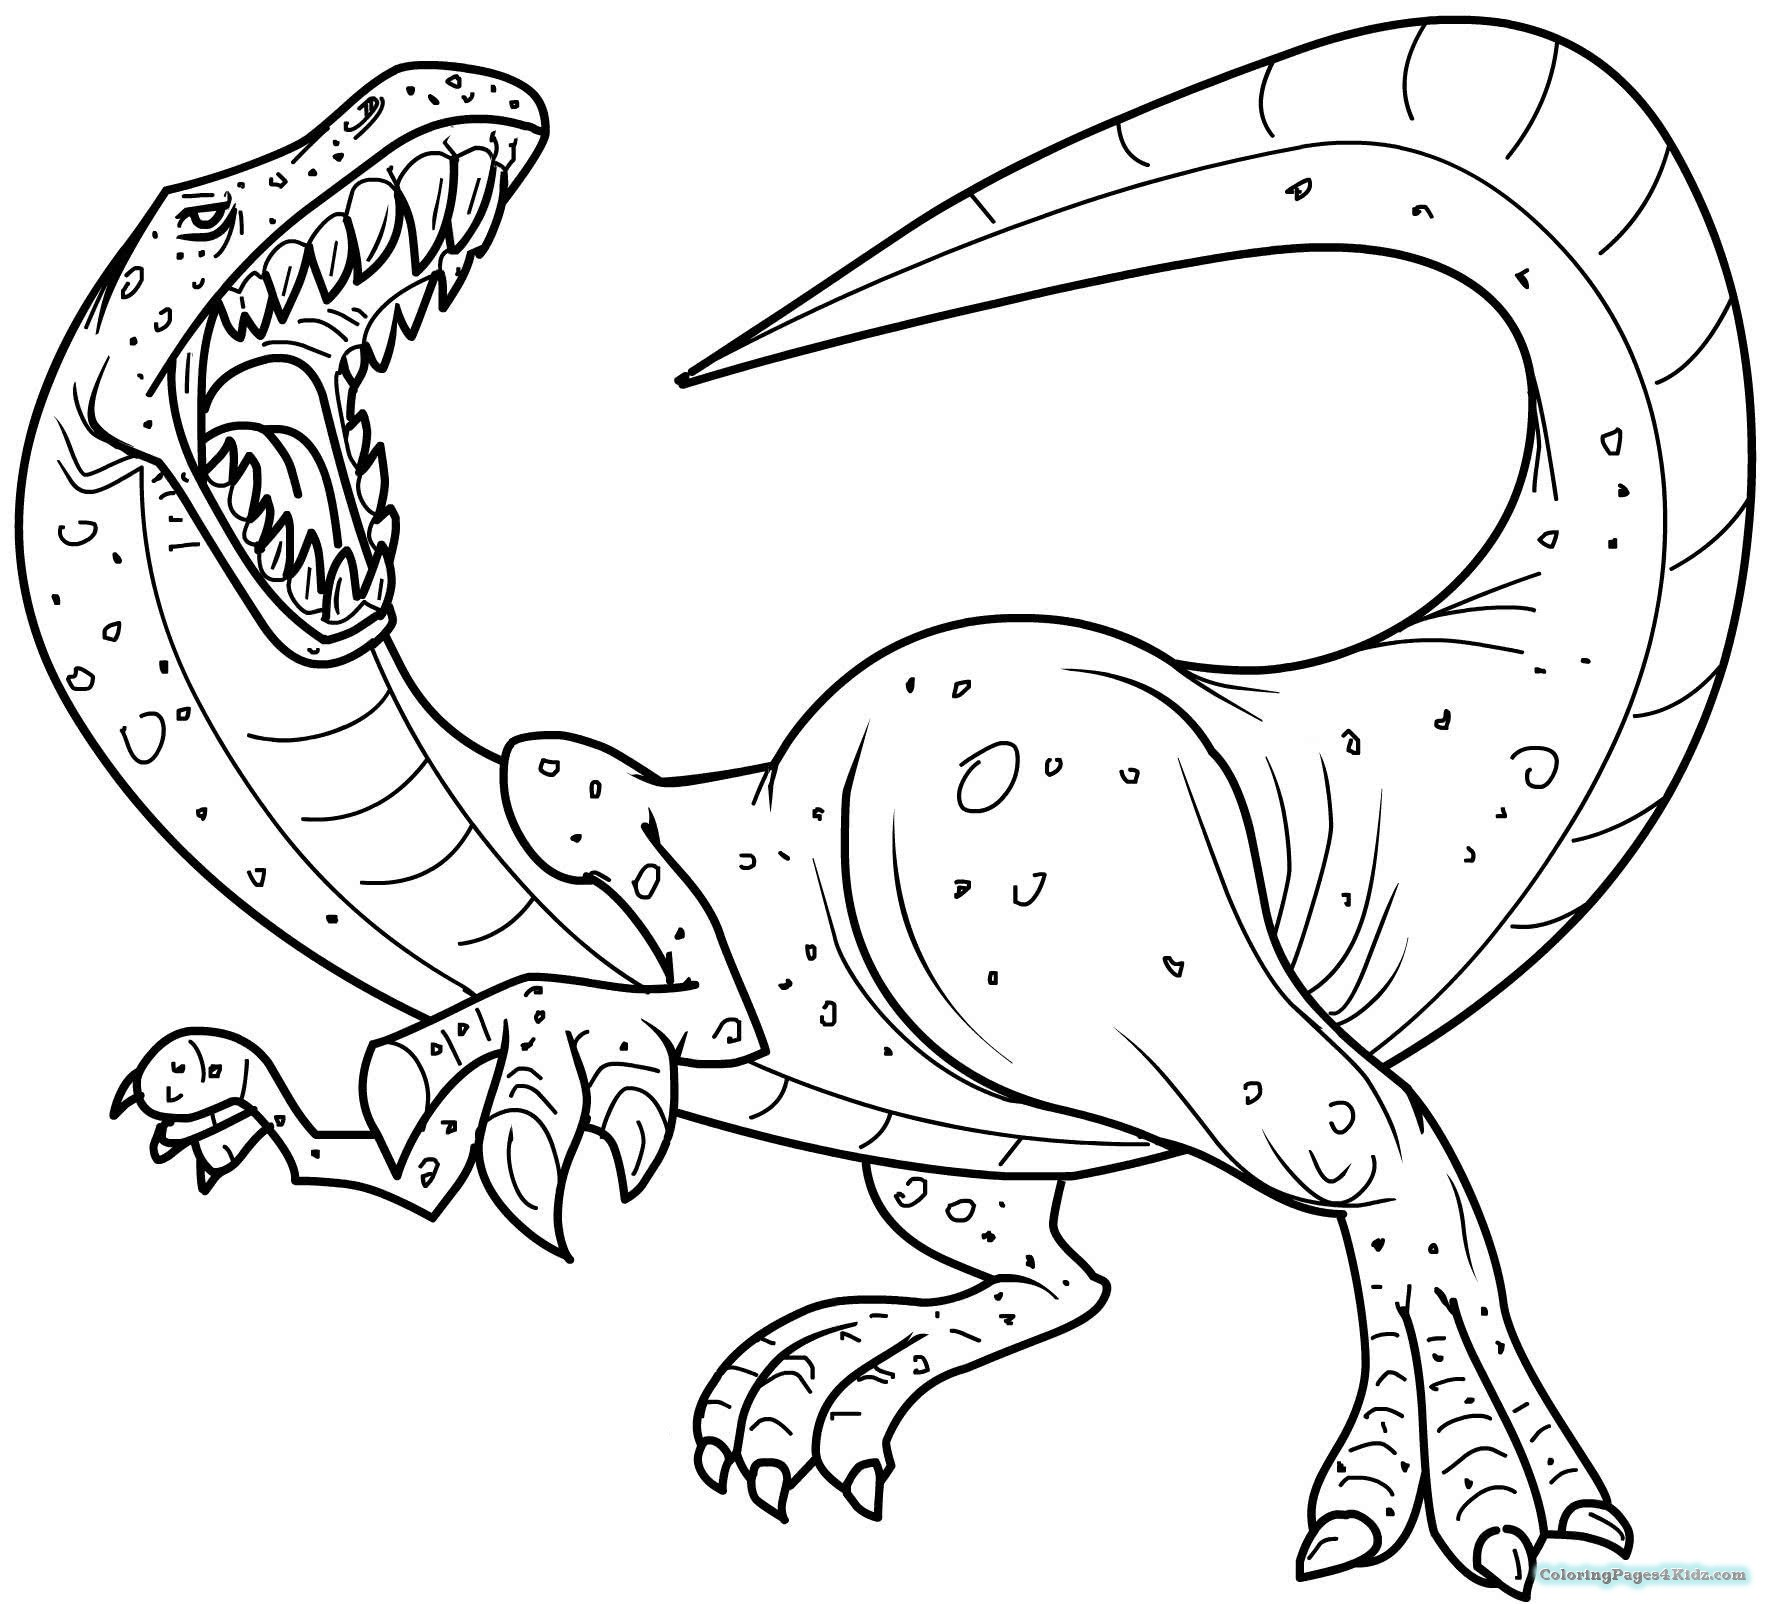 meat eating dinosaur coloring pages meat eating dinosaurs coloring pages dinosaurs pictures eating meat coloring dinosaur pages